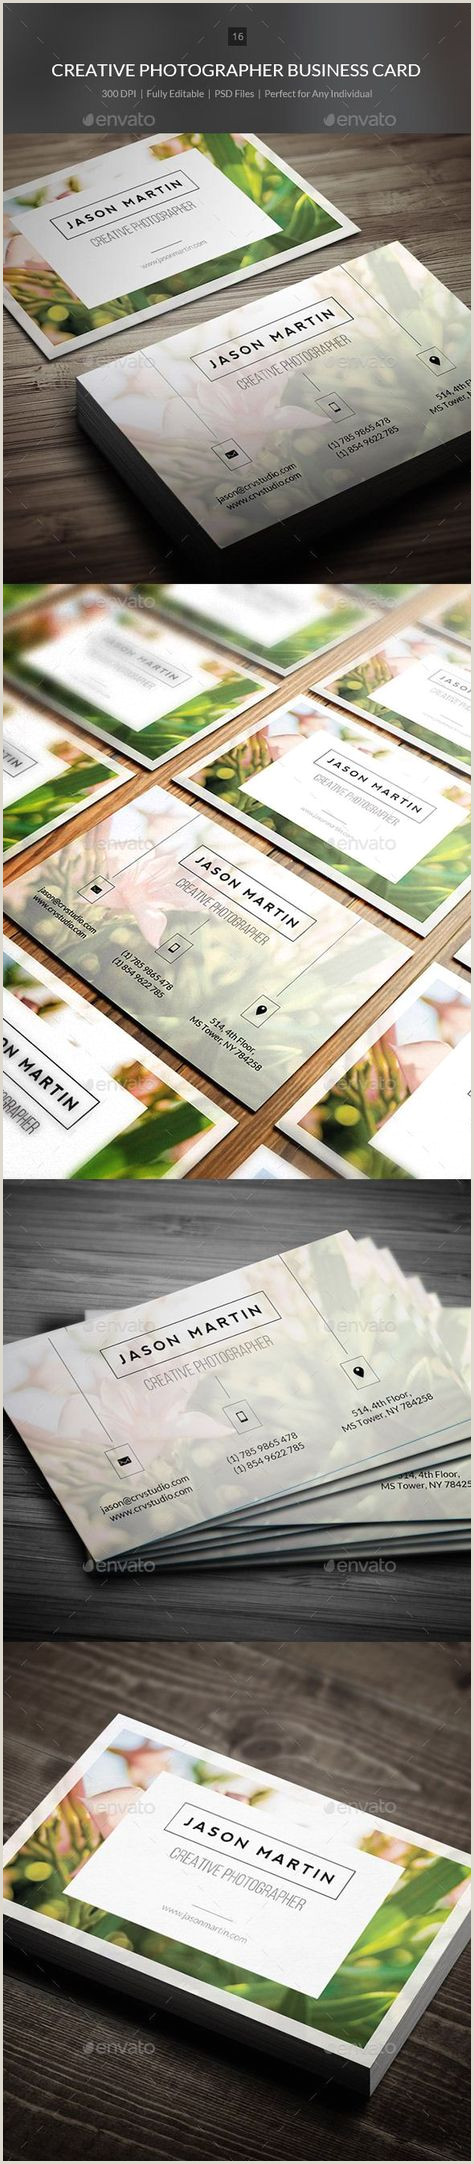 Cool Photography Business Cards 40 Trendy Ideas Photography Business Cards Template Creative